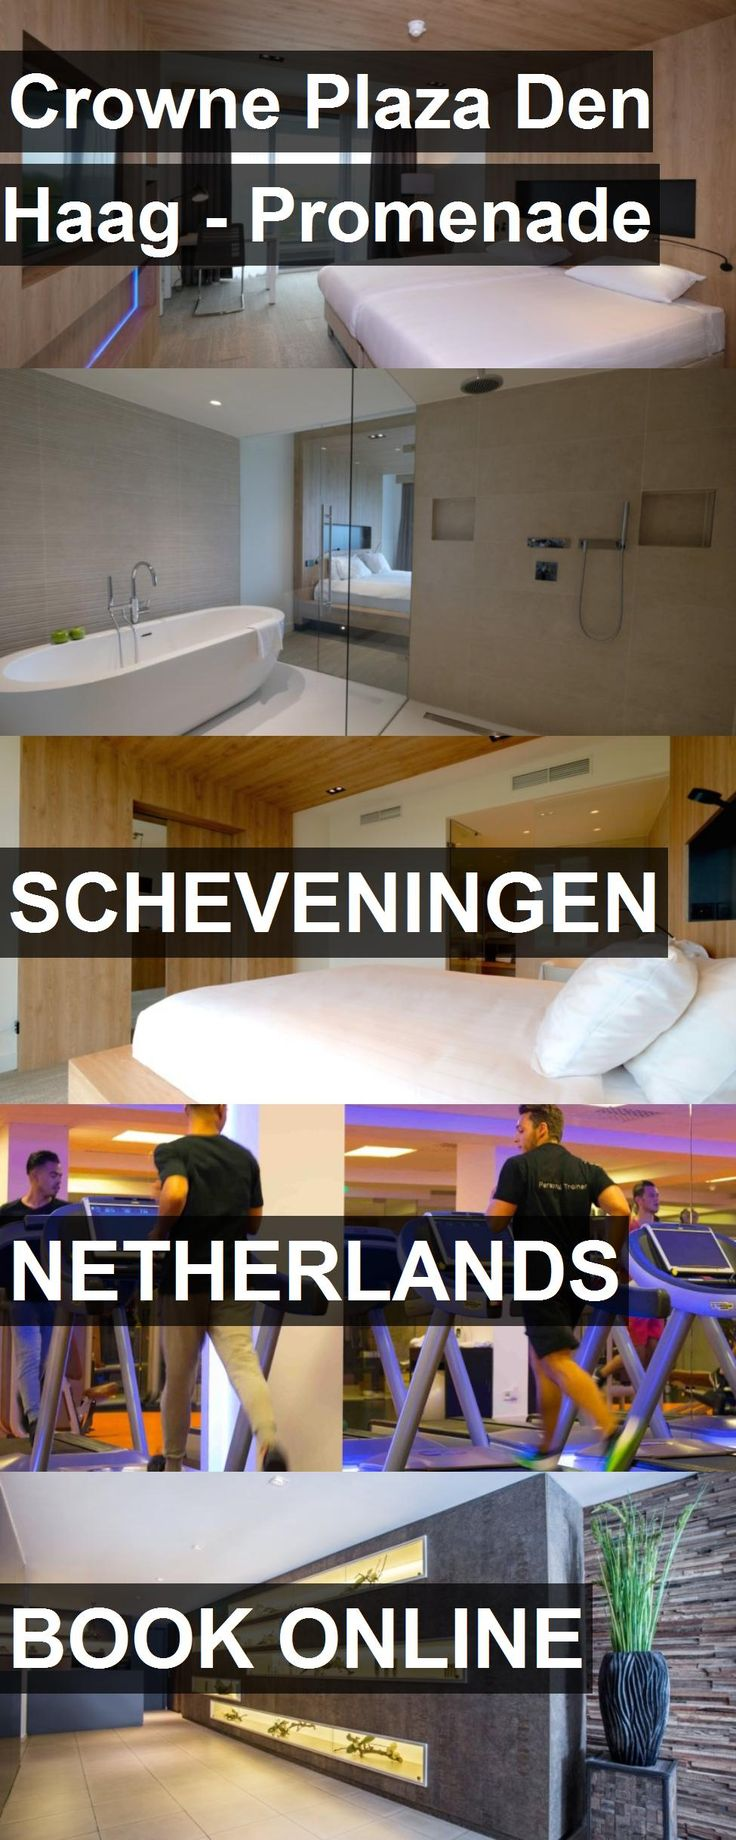 Hotel Crowne Plaza Den Haag - Promenade in Scheveningen, Netherlands. For more information, photos, reviews and best prices please follow the link. #Netherlands #Scheveningen #travel #vacation #hotel